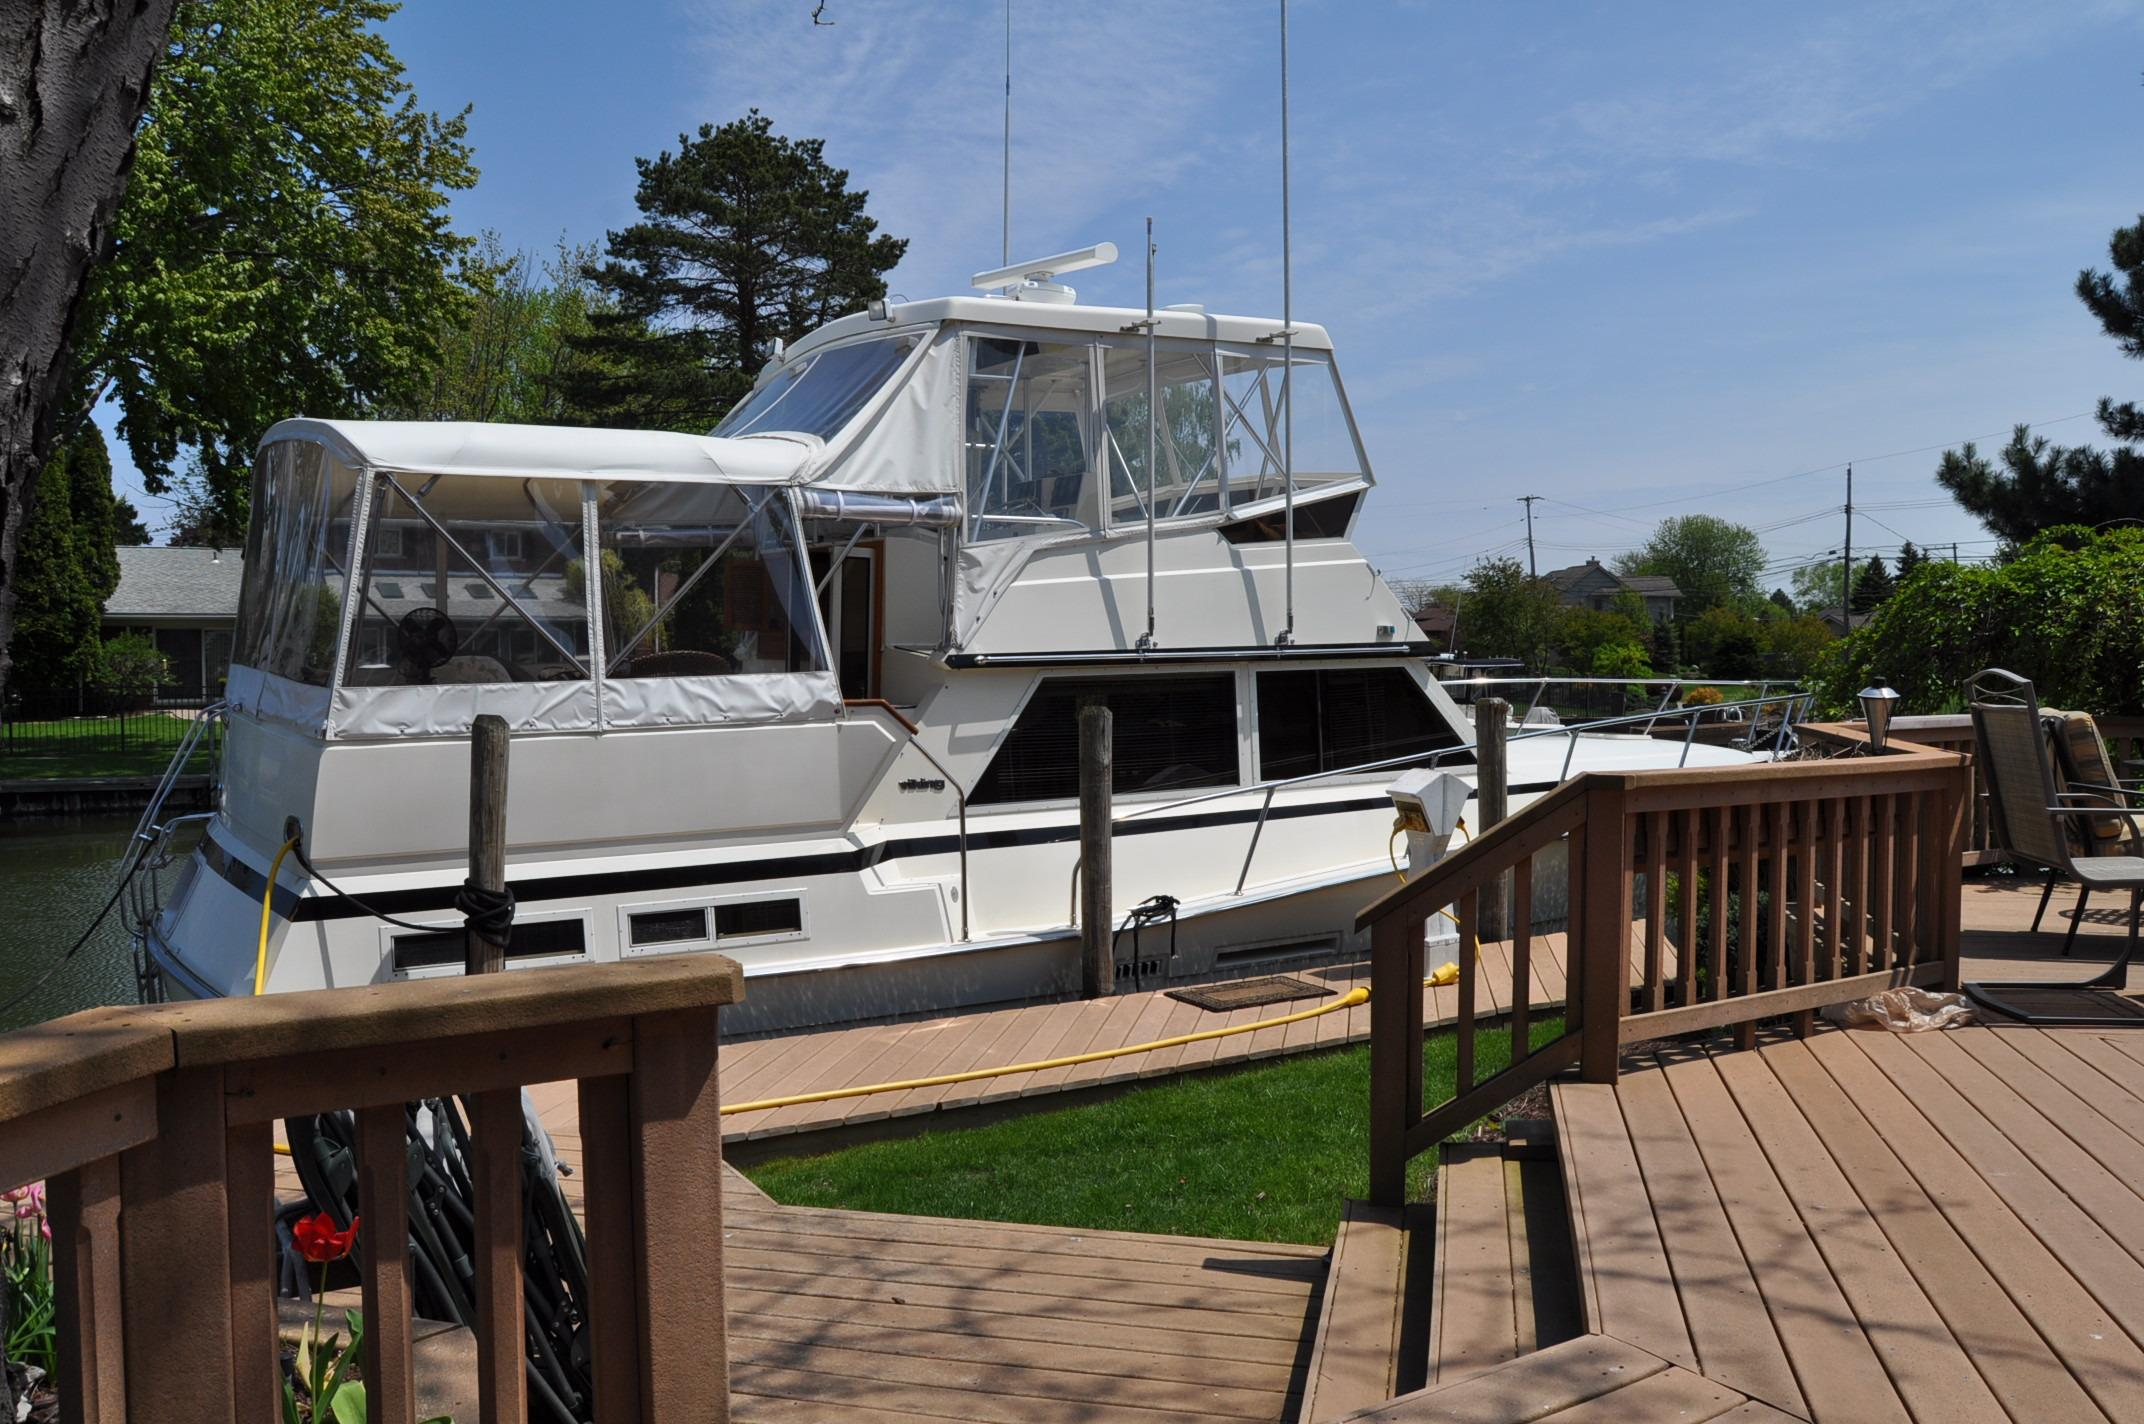 Used Viking 44 Motor Yacht Boats For Sale - Temptation Yacht Sales